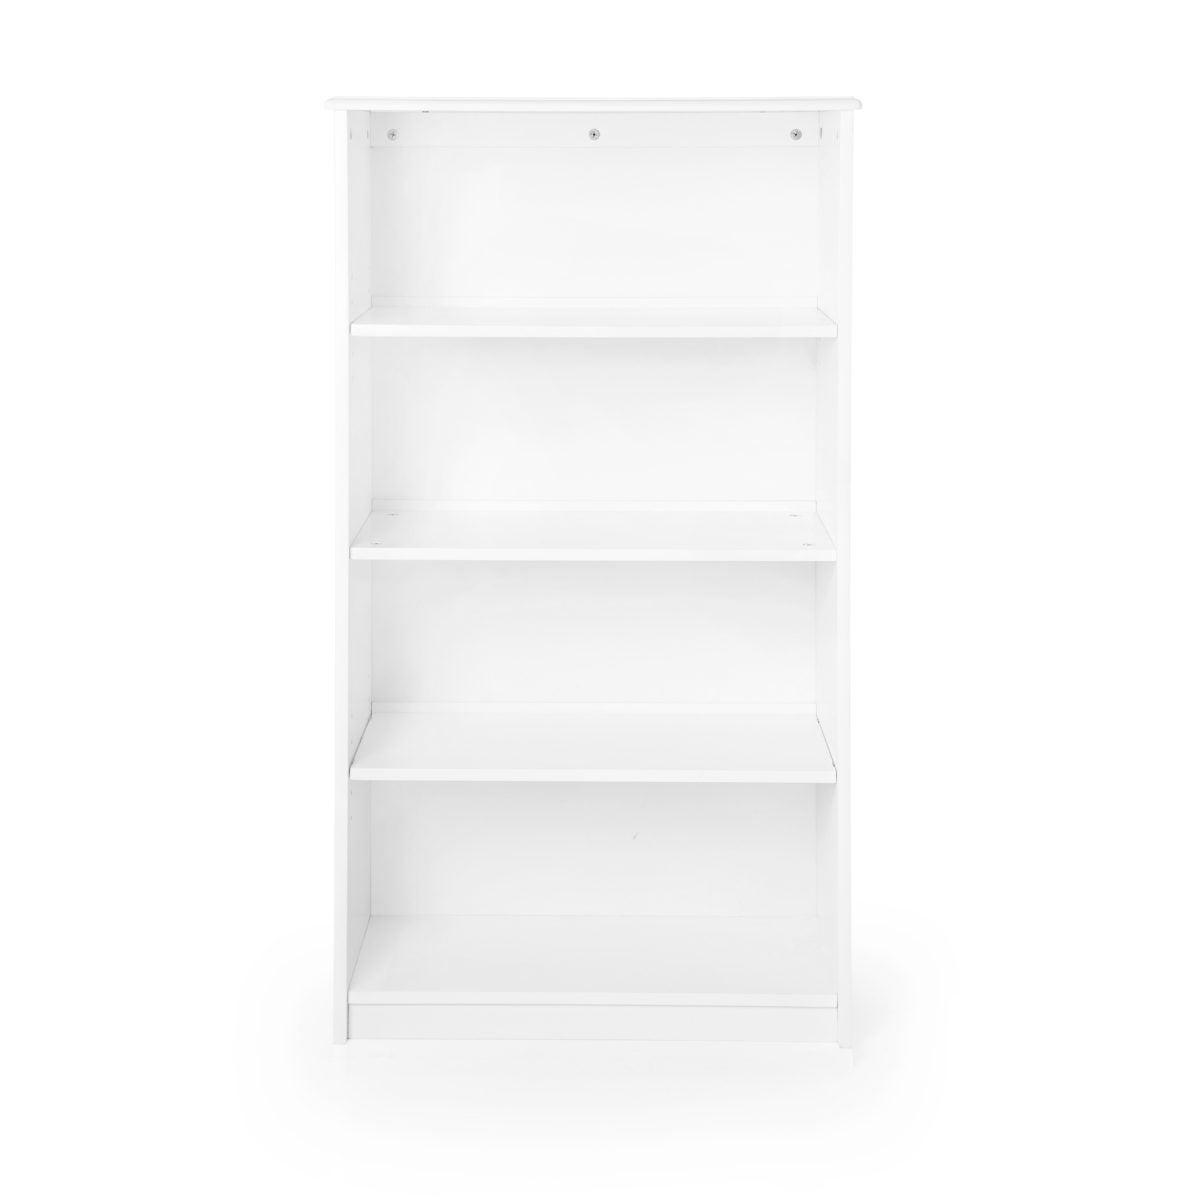 Shop Guidecraft Classic 48 Bookshelf